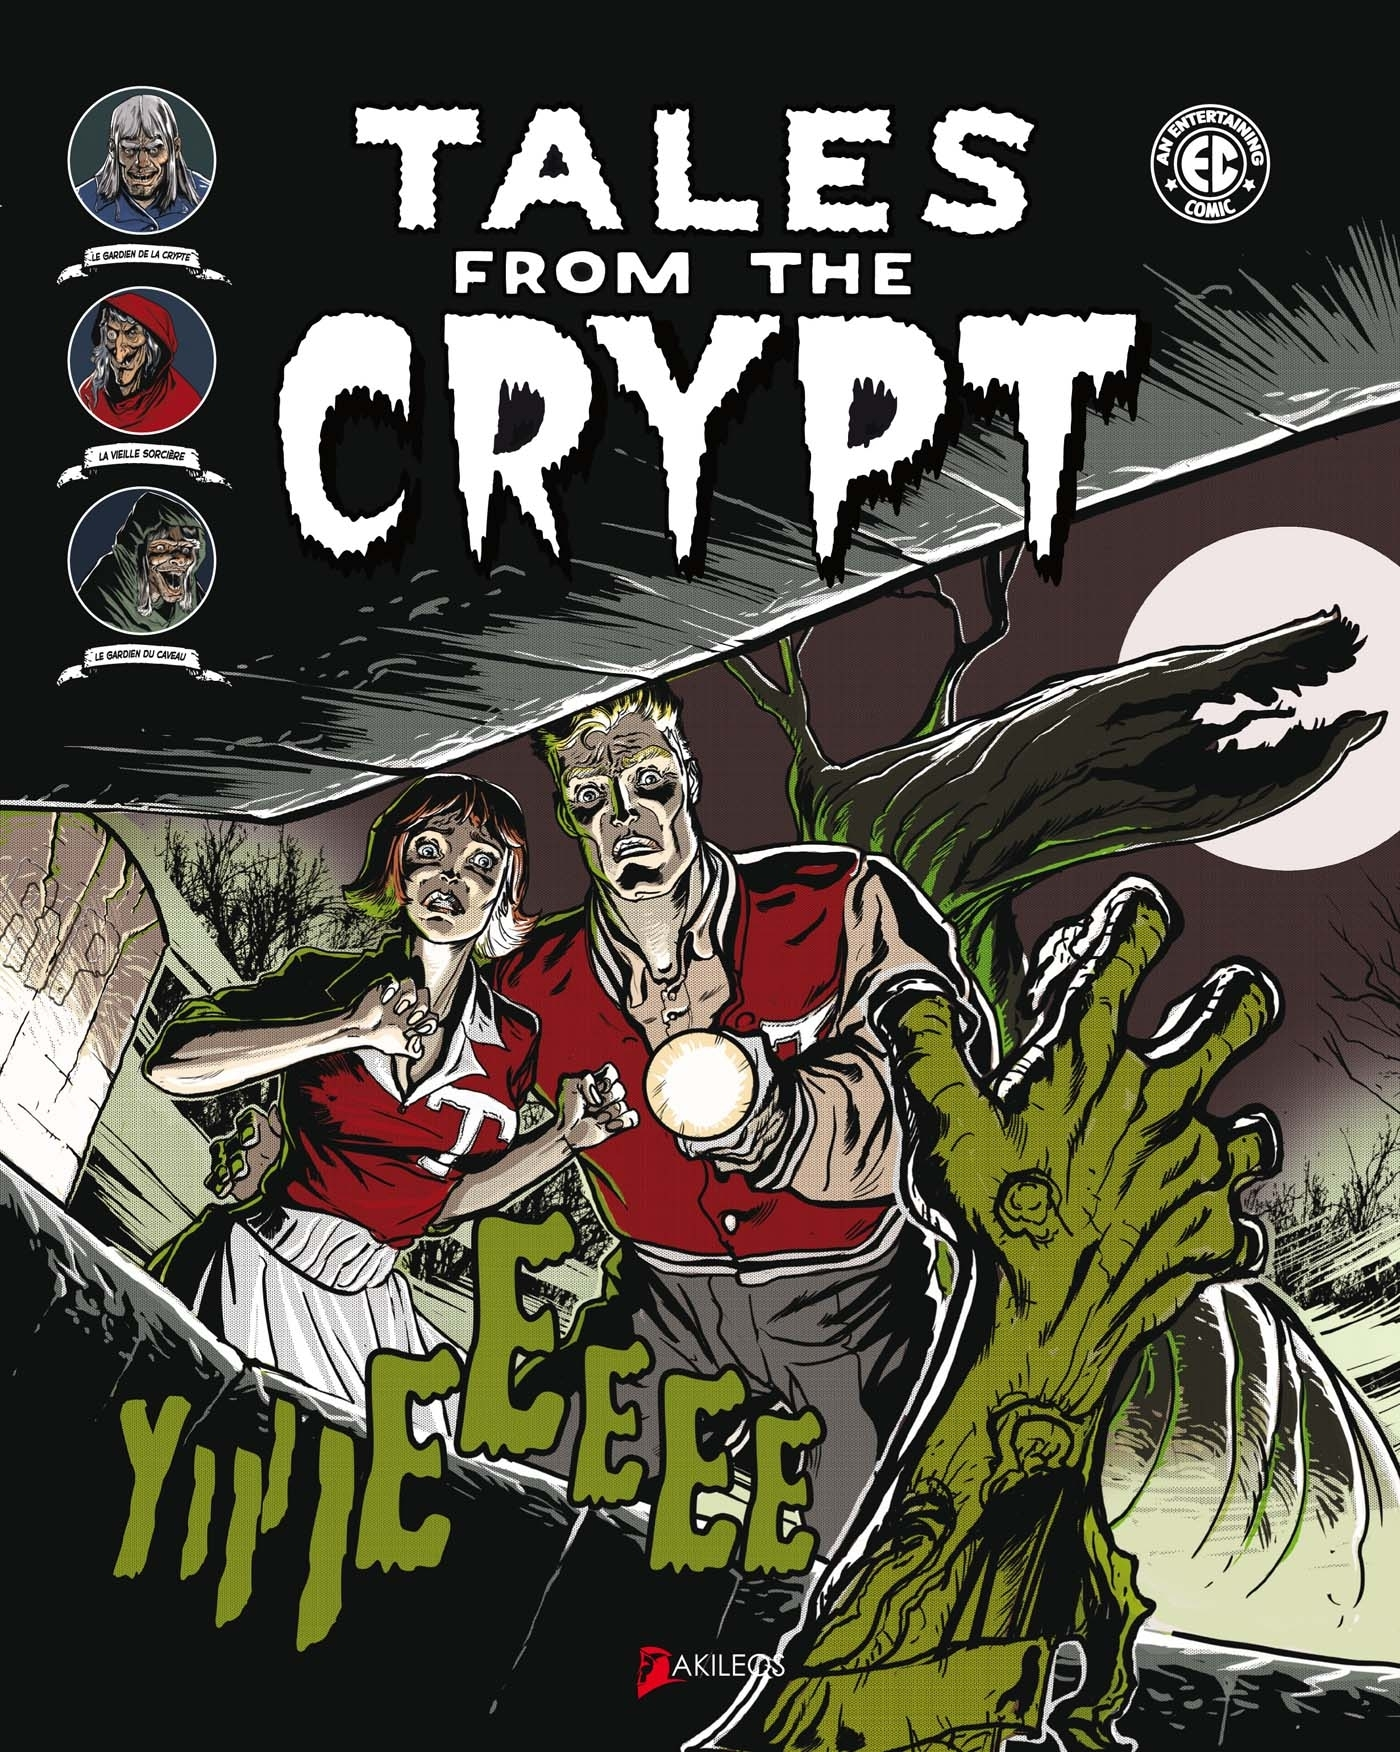 TALES FROM THE CRYPT T1